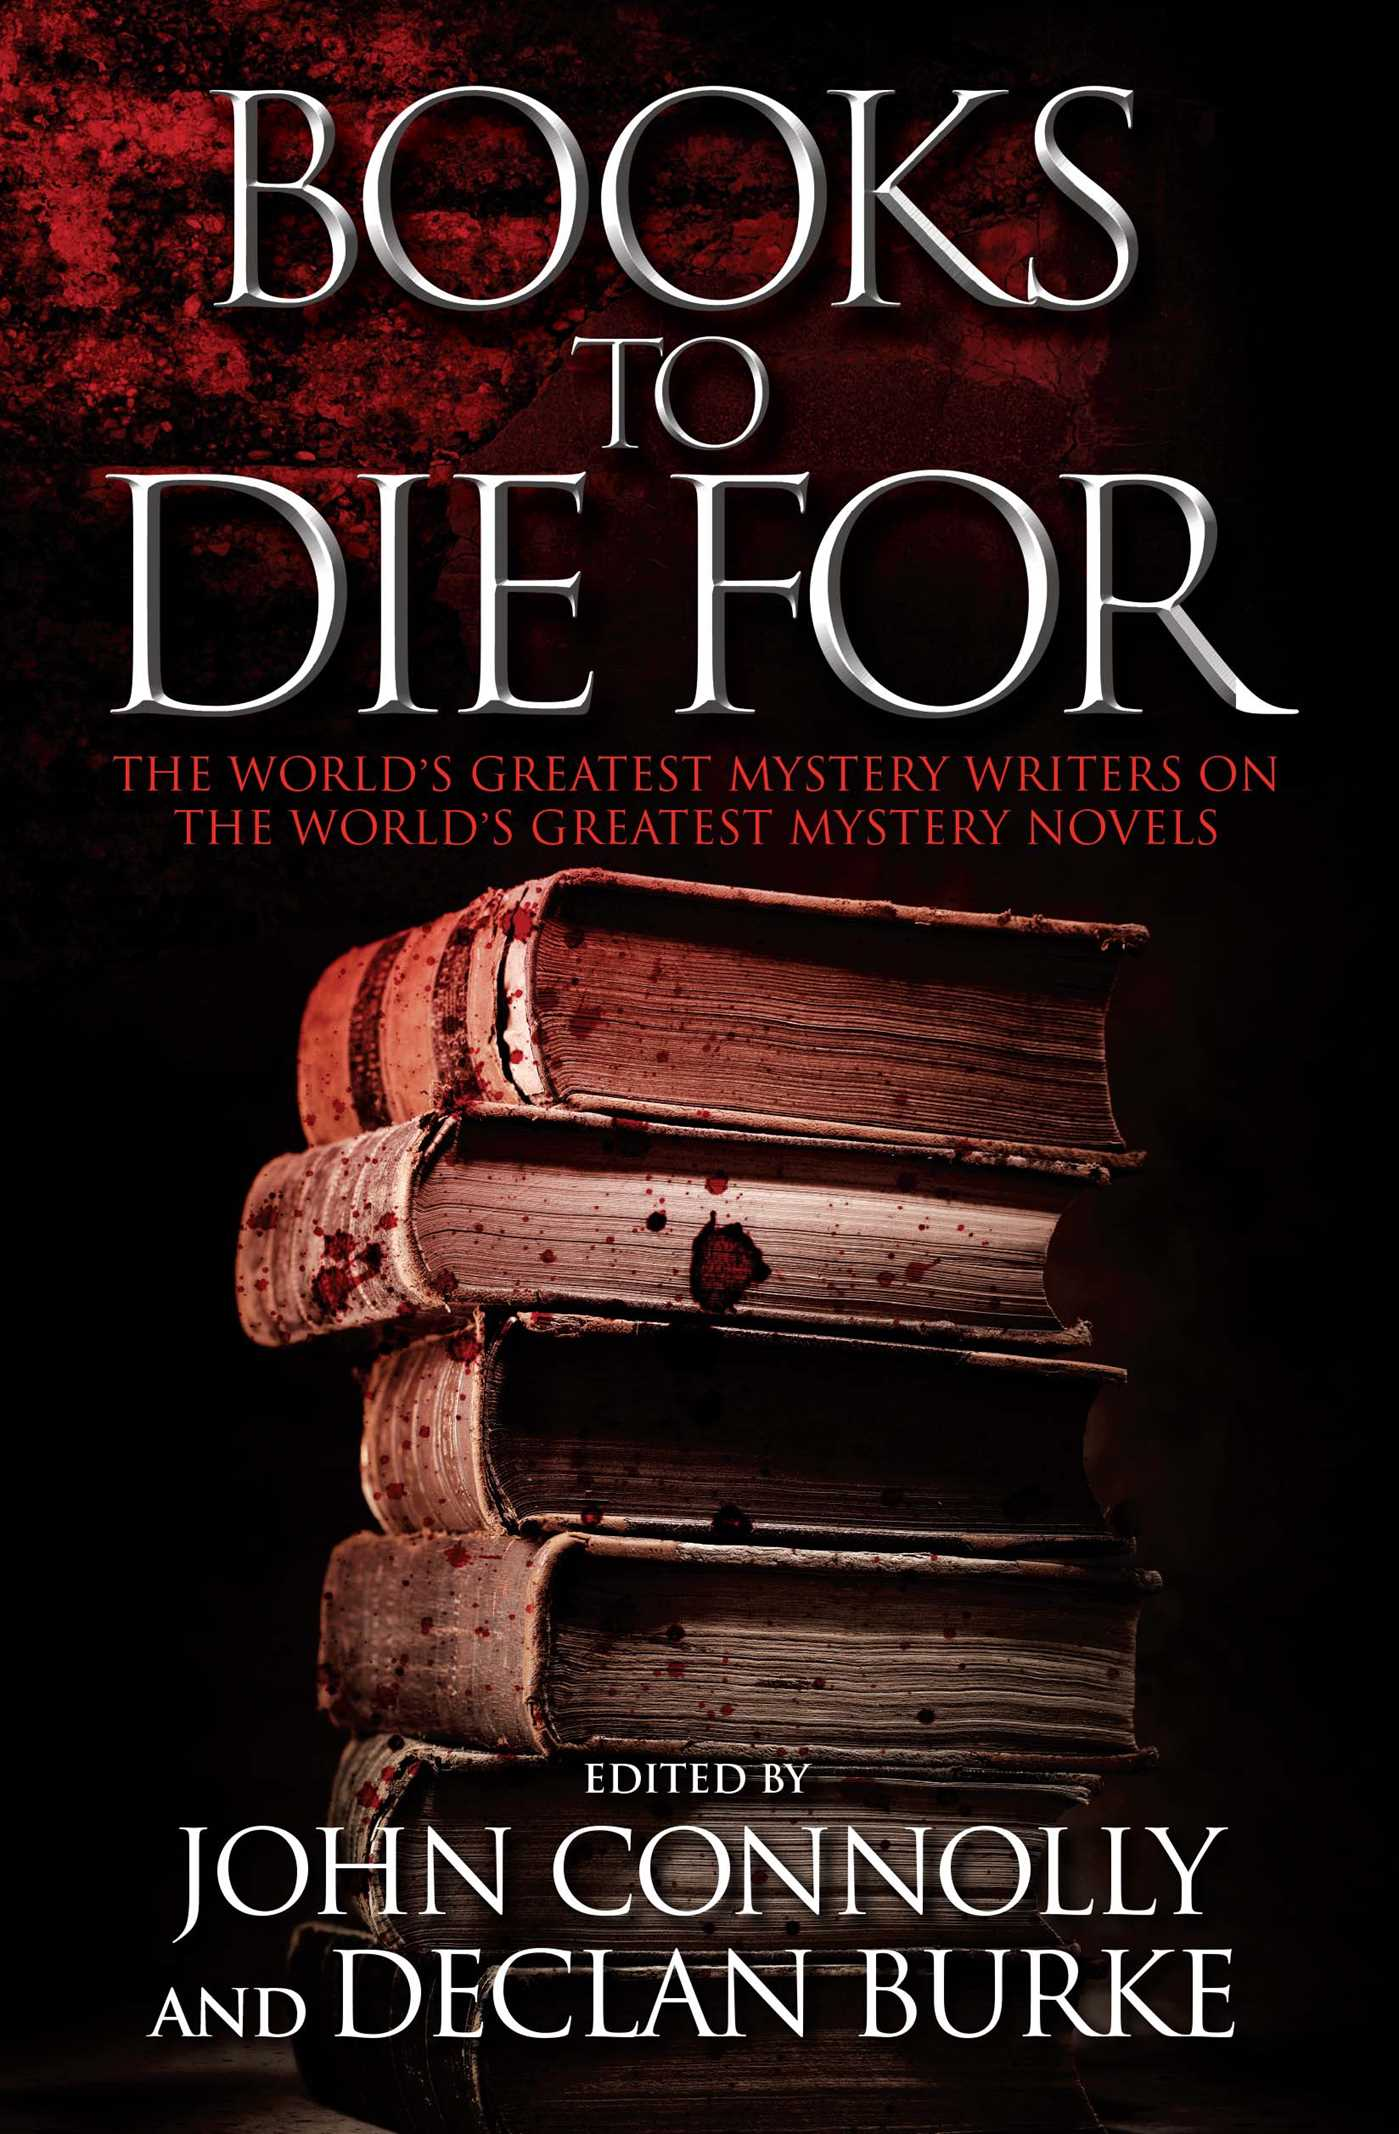 Books to die for 9781451696585 hr